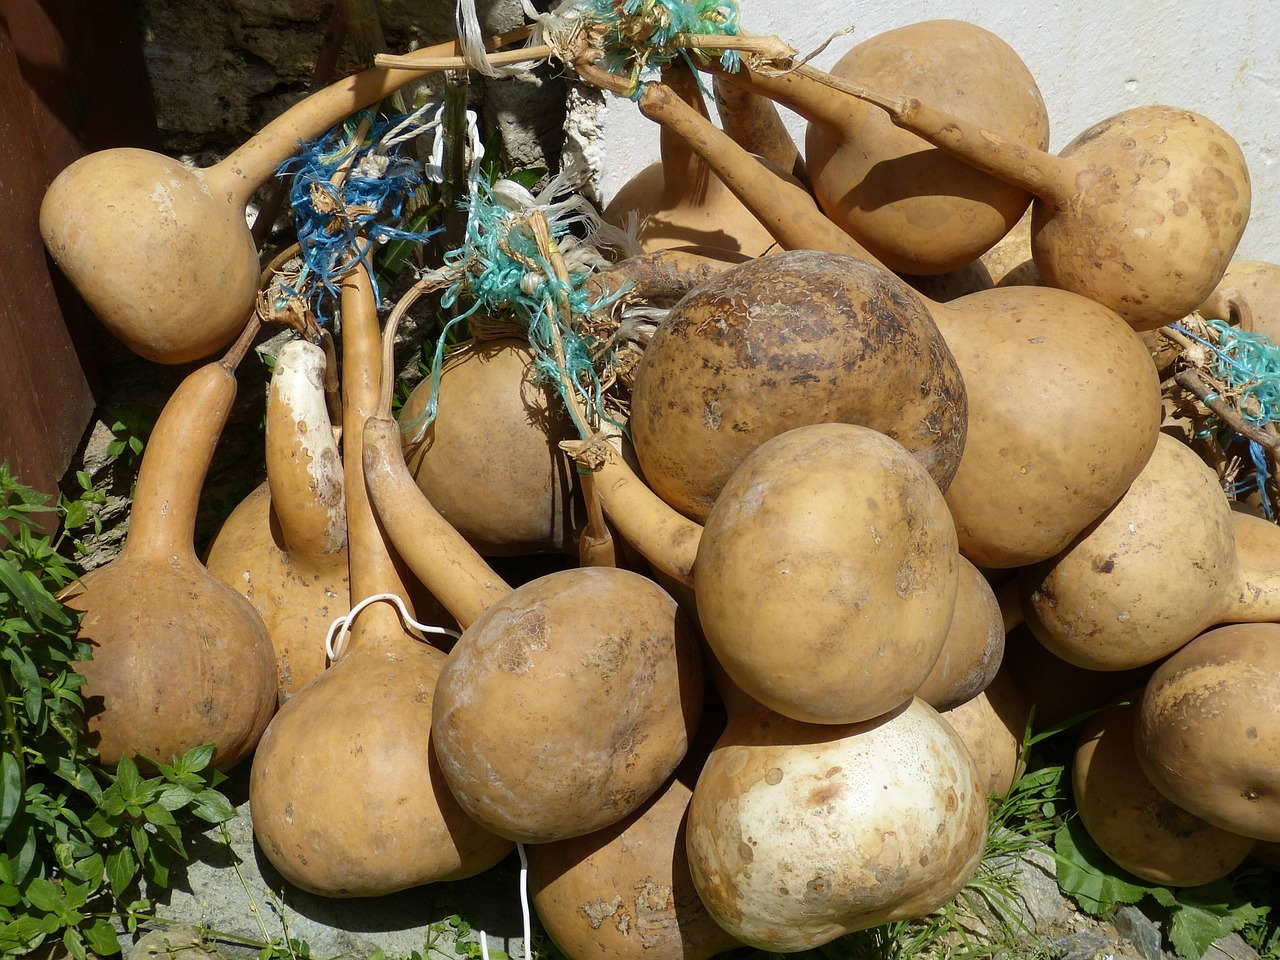 calabash pumpkin art cucurbitaceae free photo